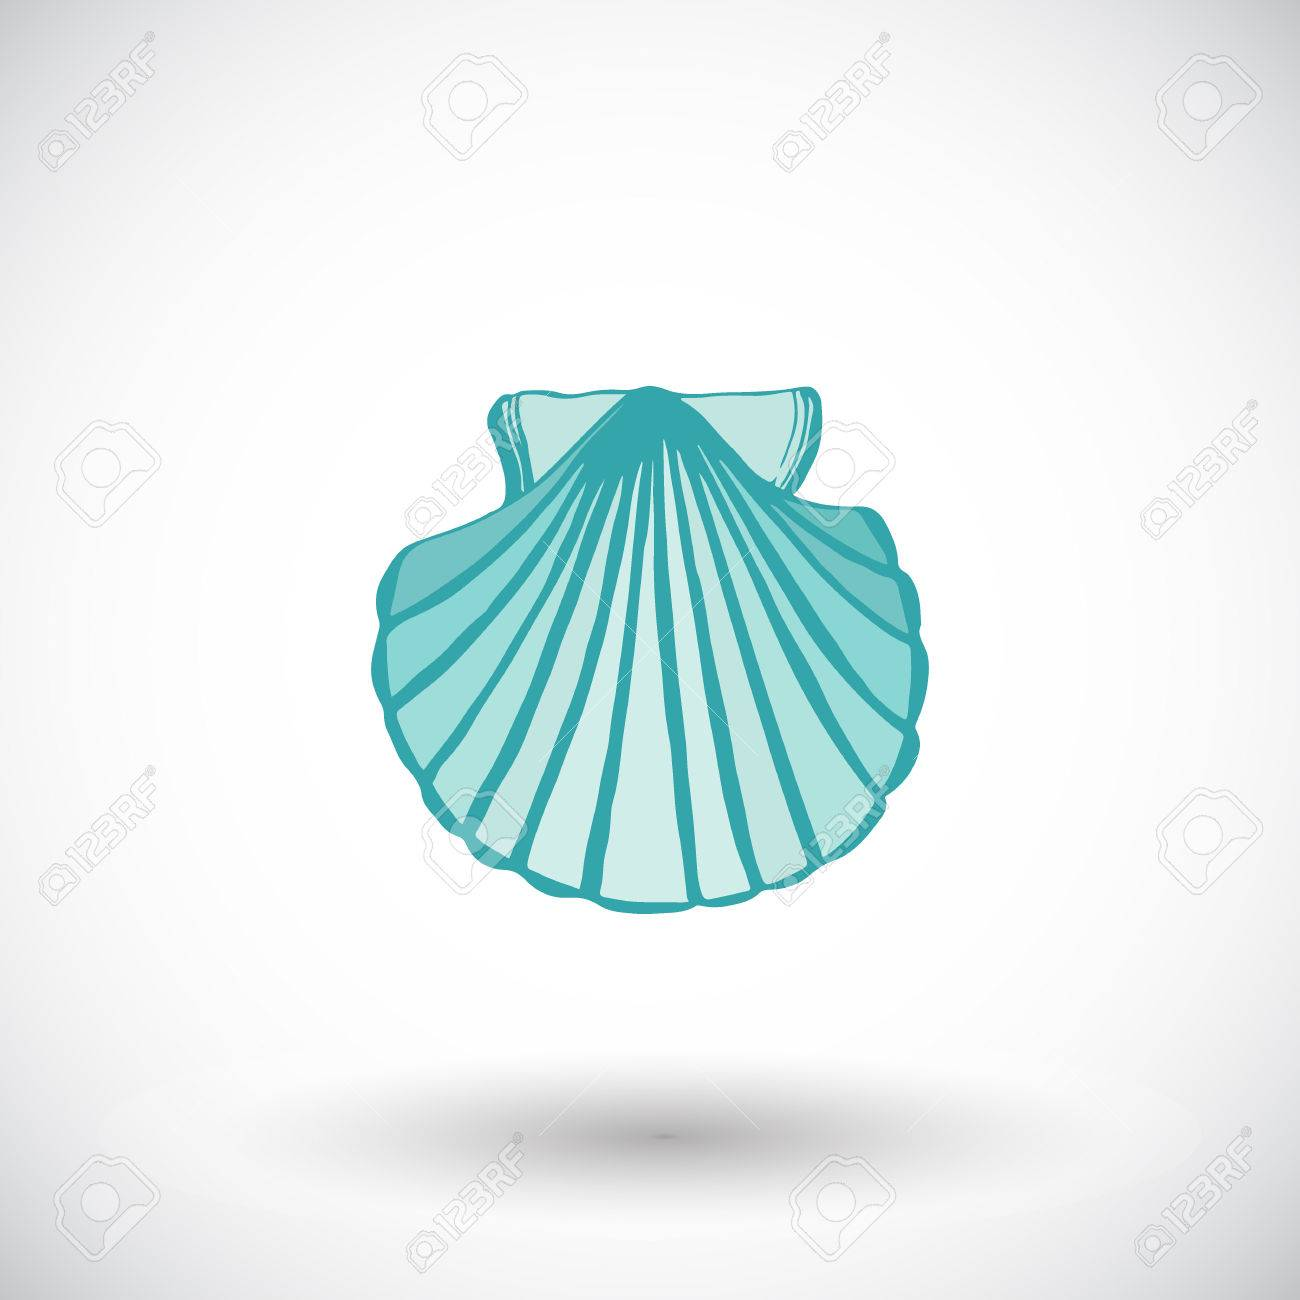 1300x1300 Scallop Shell Sketch. Hand Drawn Sea Or Ocean Life Cartoon Icon